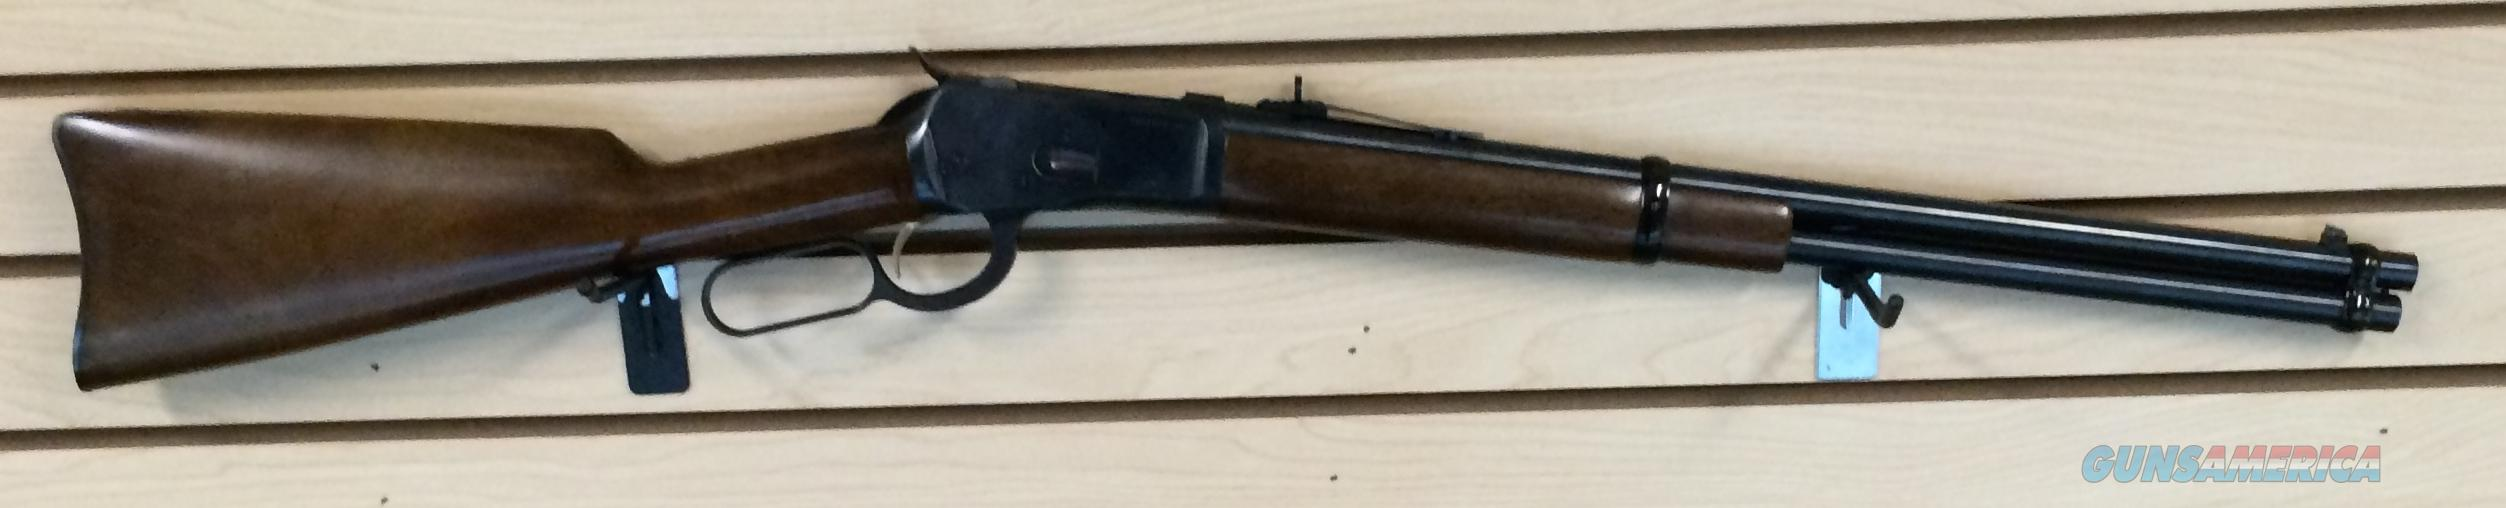 USED BROWNING 94 44MAG LEVER ACTION FREE SHIPPING!!   Guns > Rifles > Browning Rifles > Lever Action